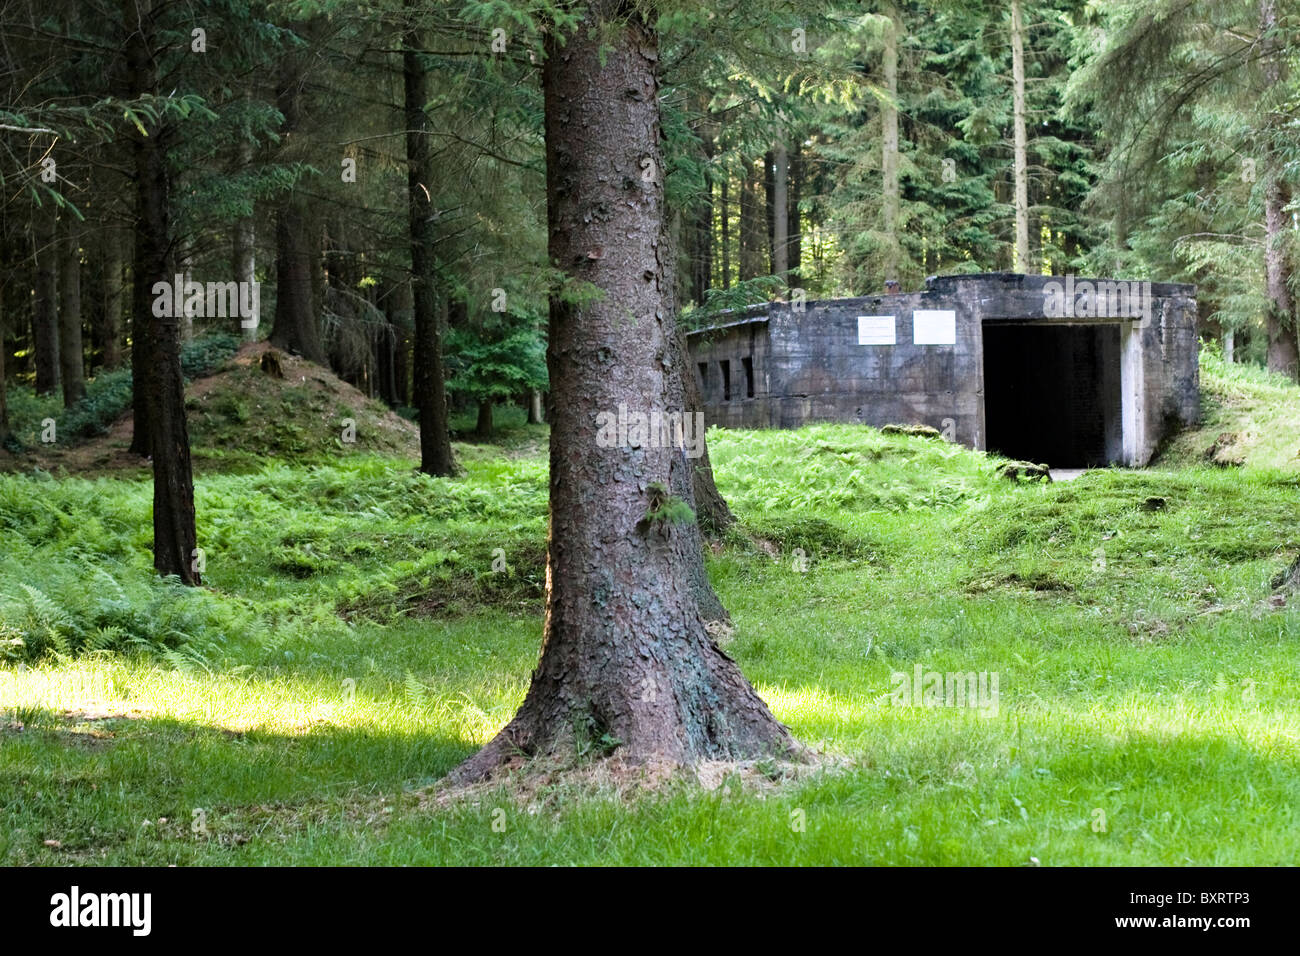 France, Normandie, View of bunker in forest - Stock Image